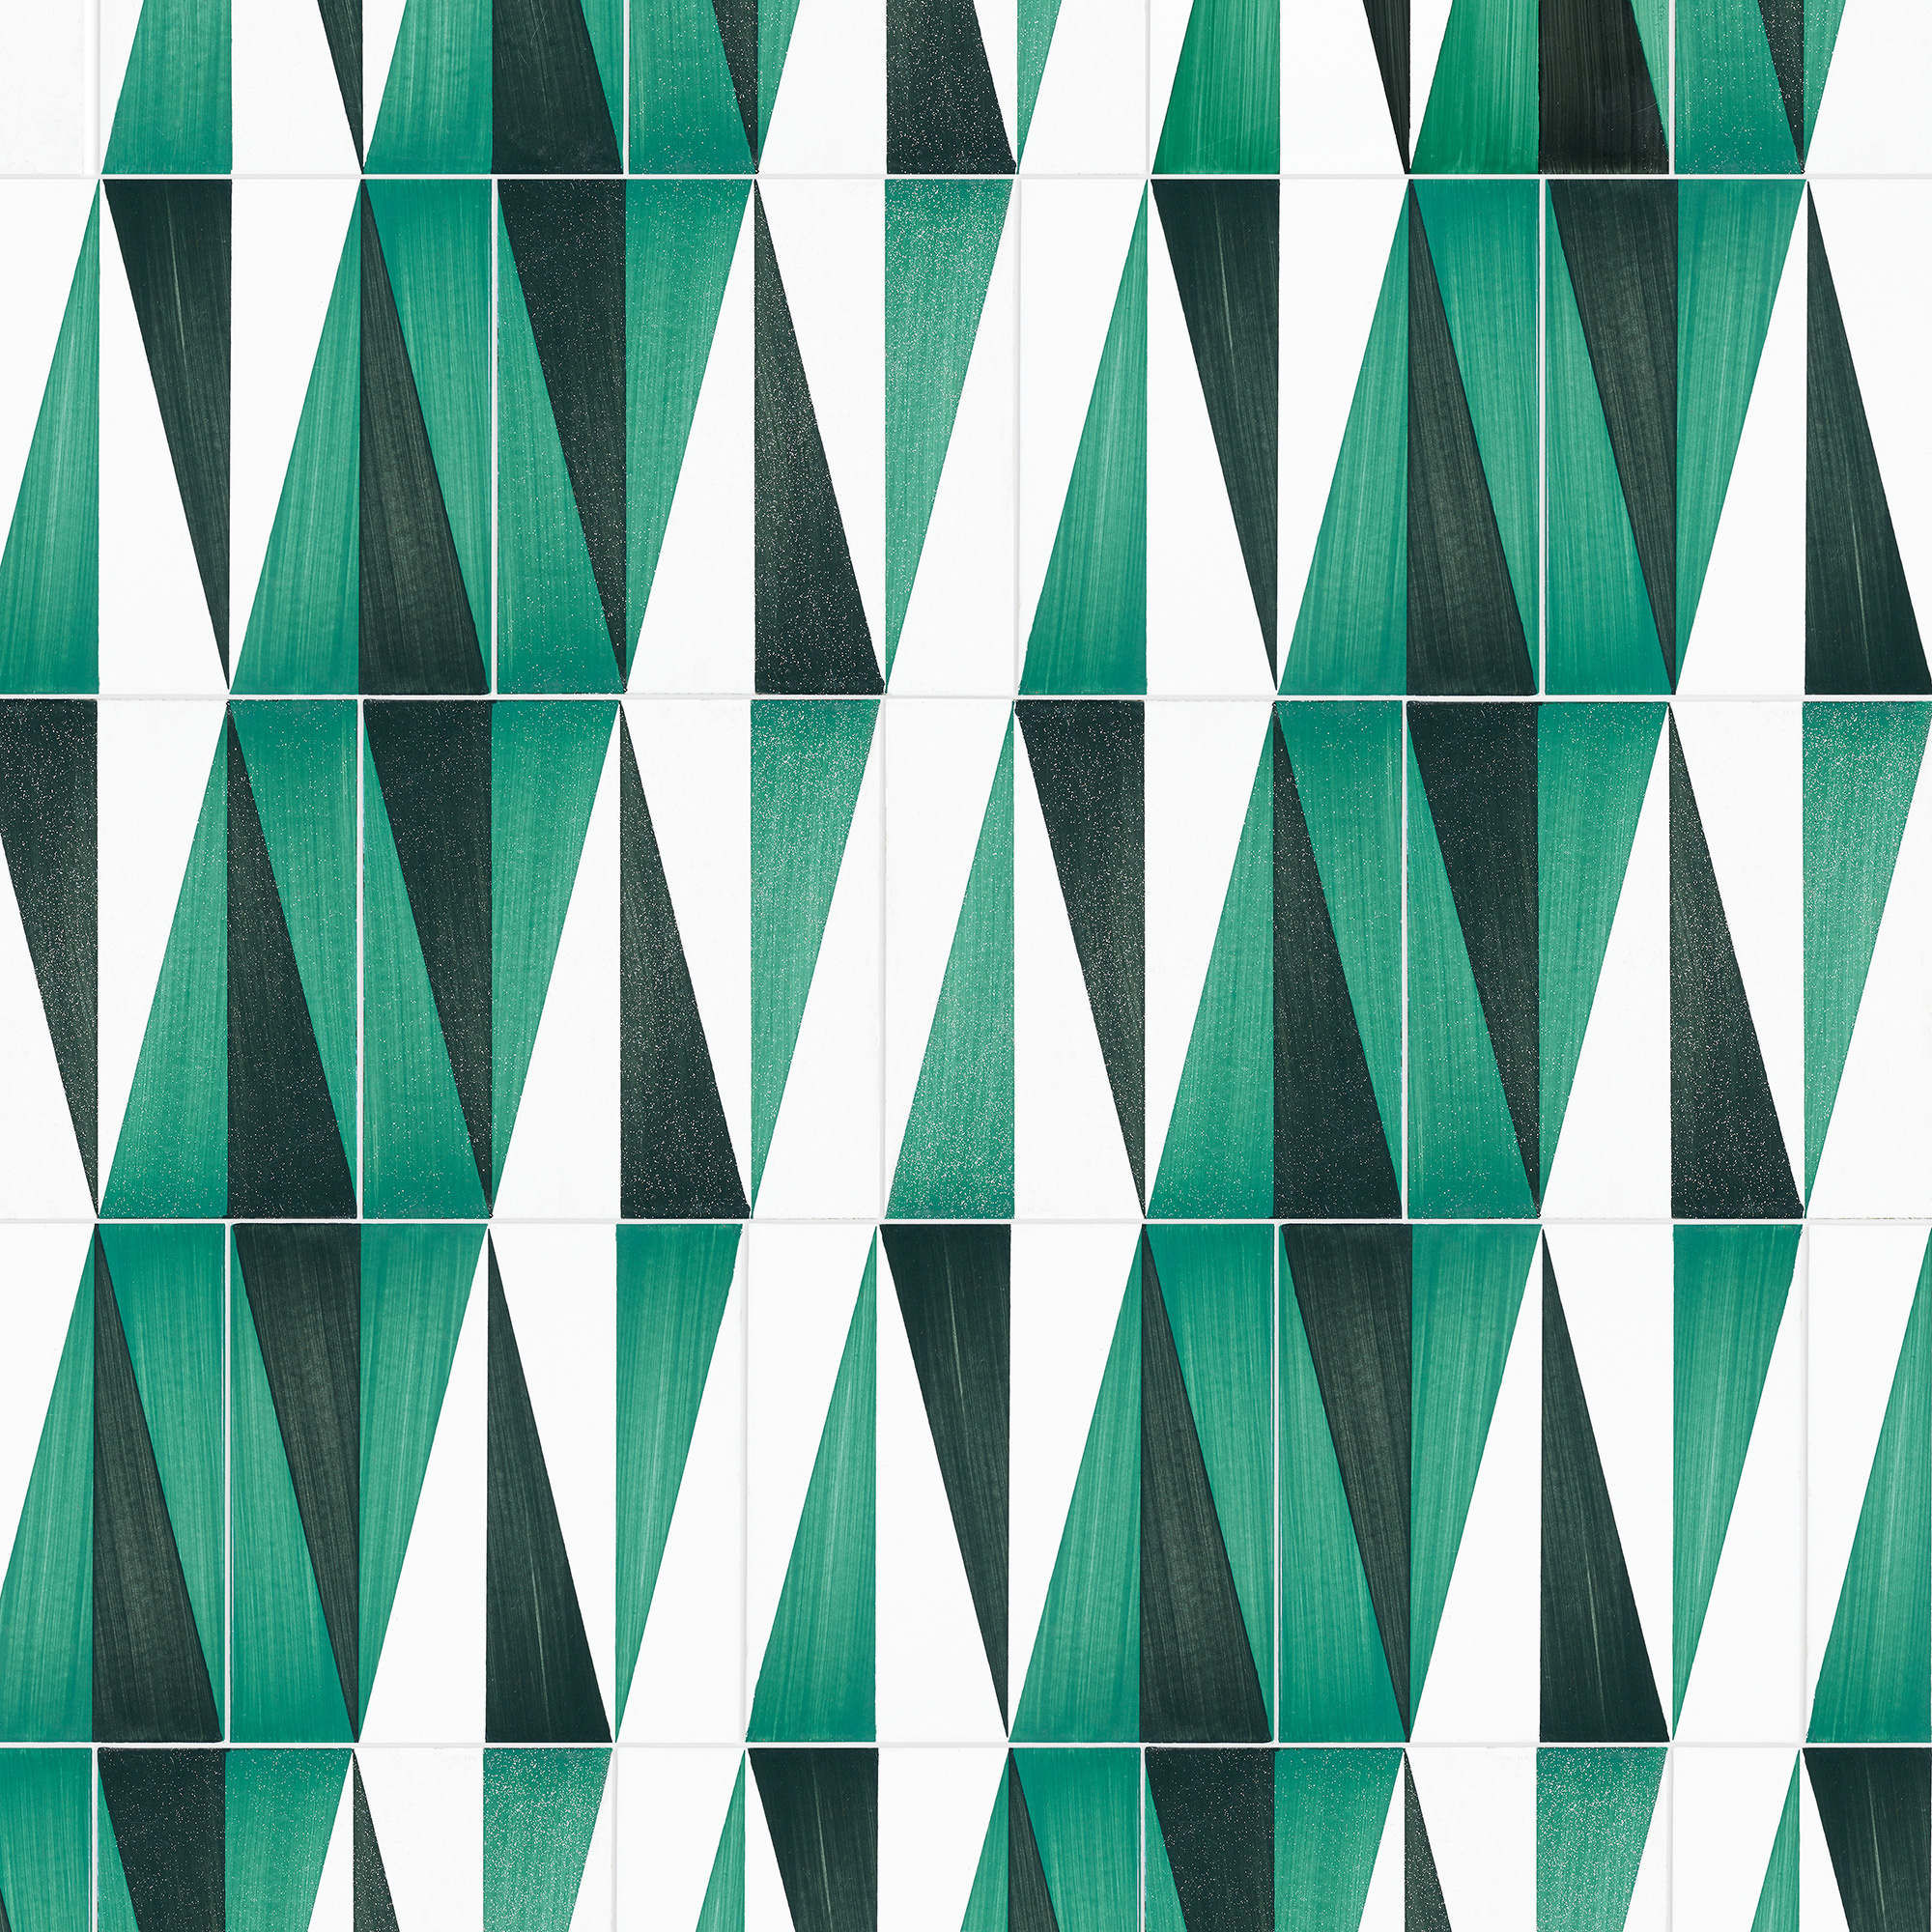 215 gio ponti collection of 175 tiles from the hotel - Piastrelle gio ponti ...